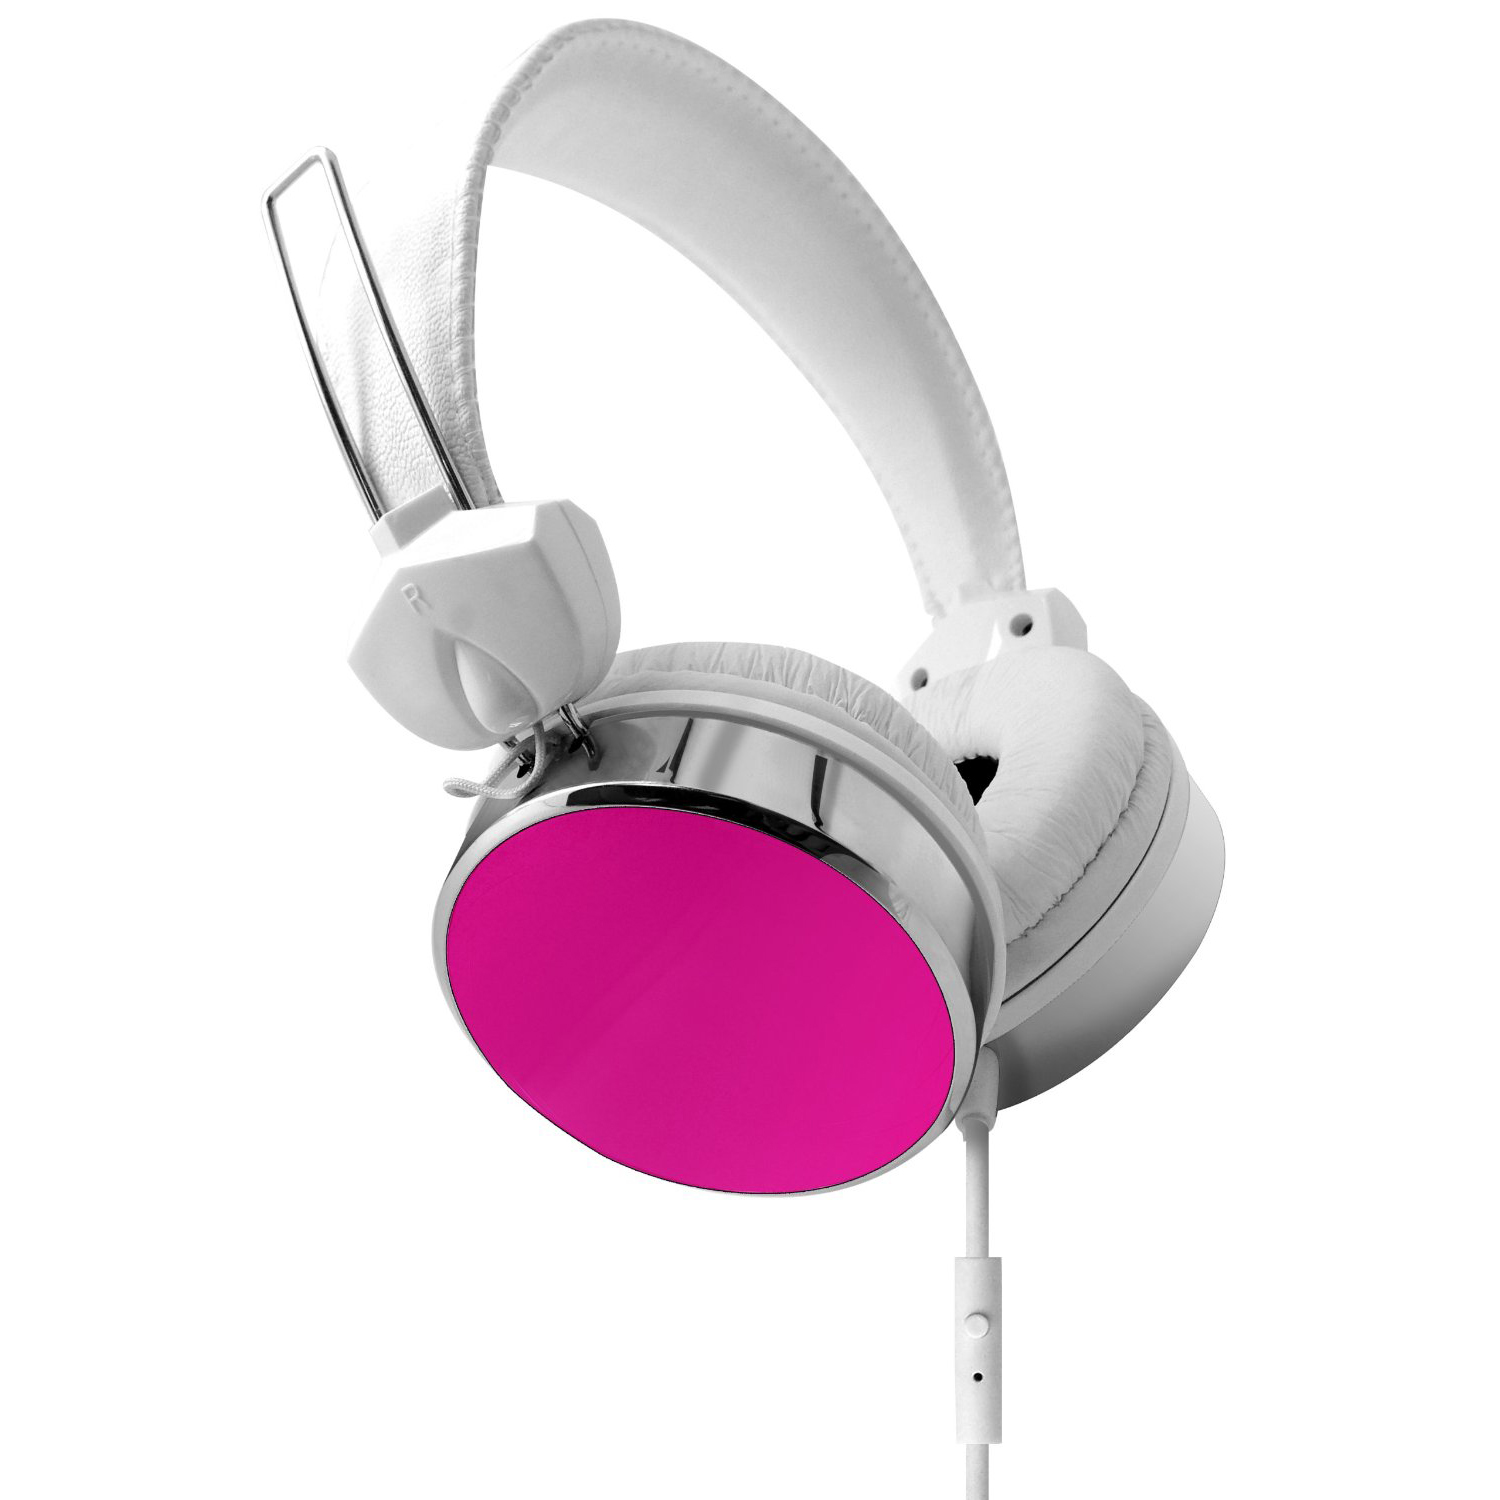 Hype Audio Stereo Eclipse Performance Headphones w/ Inline Mic & Answer Control at Sears.com